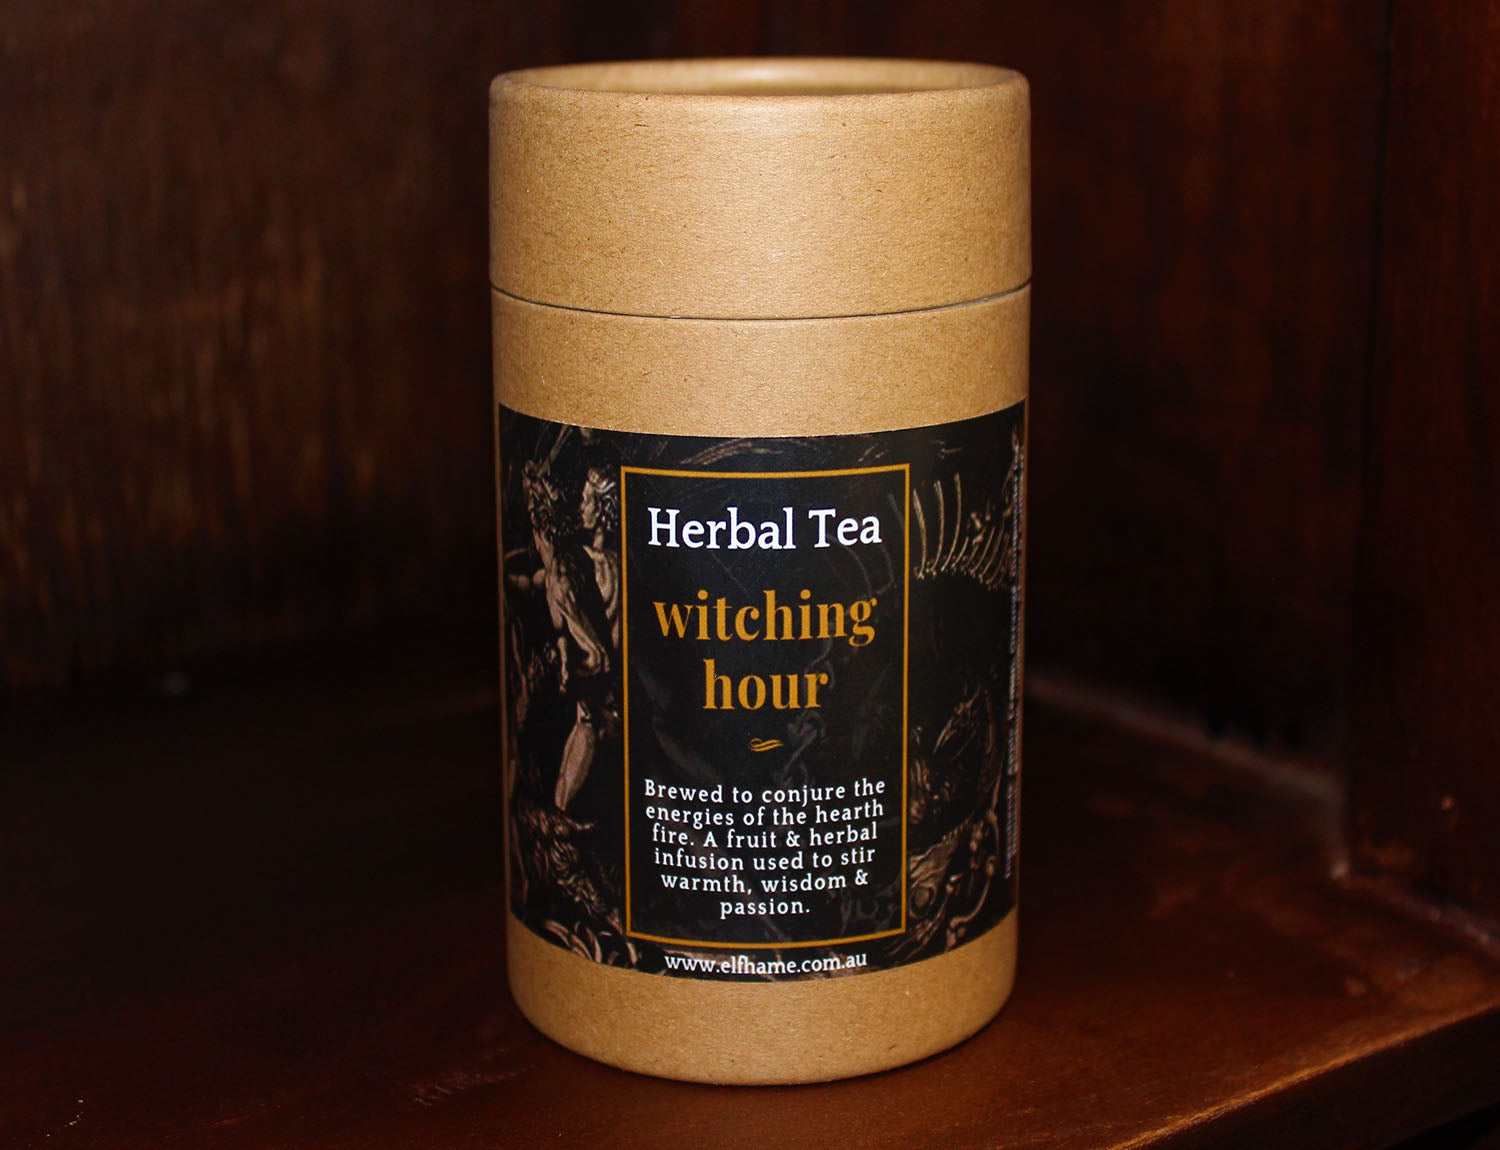 Witching Hour, Herbal Tea